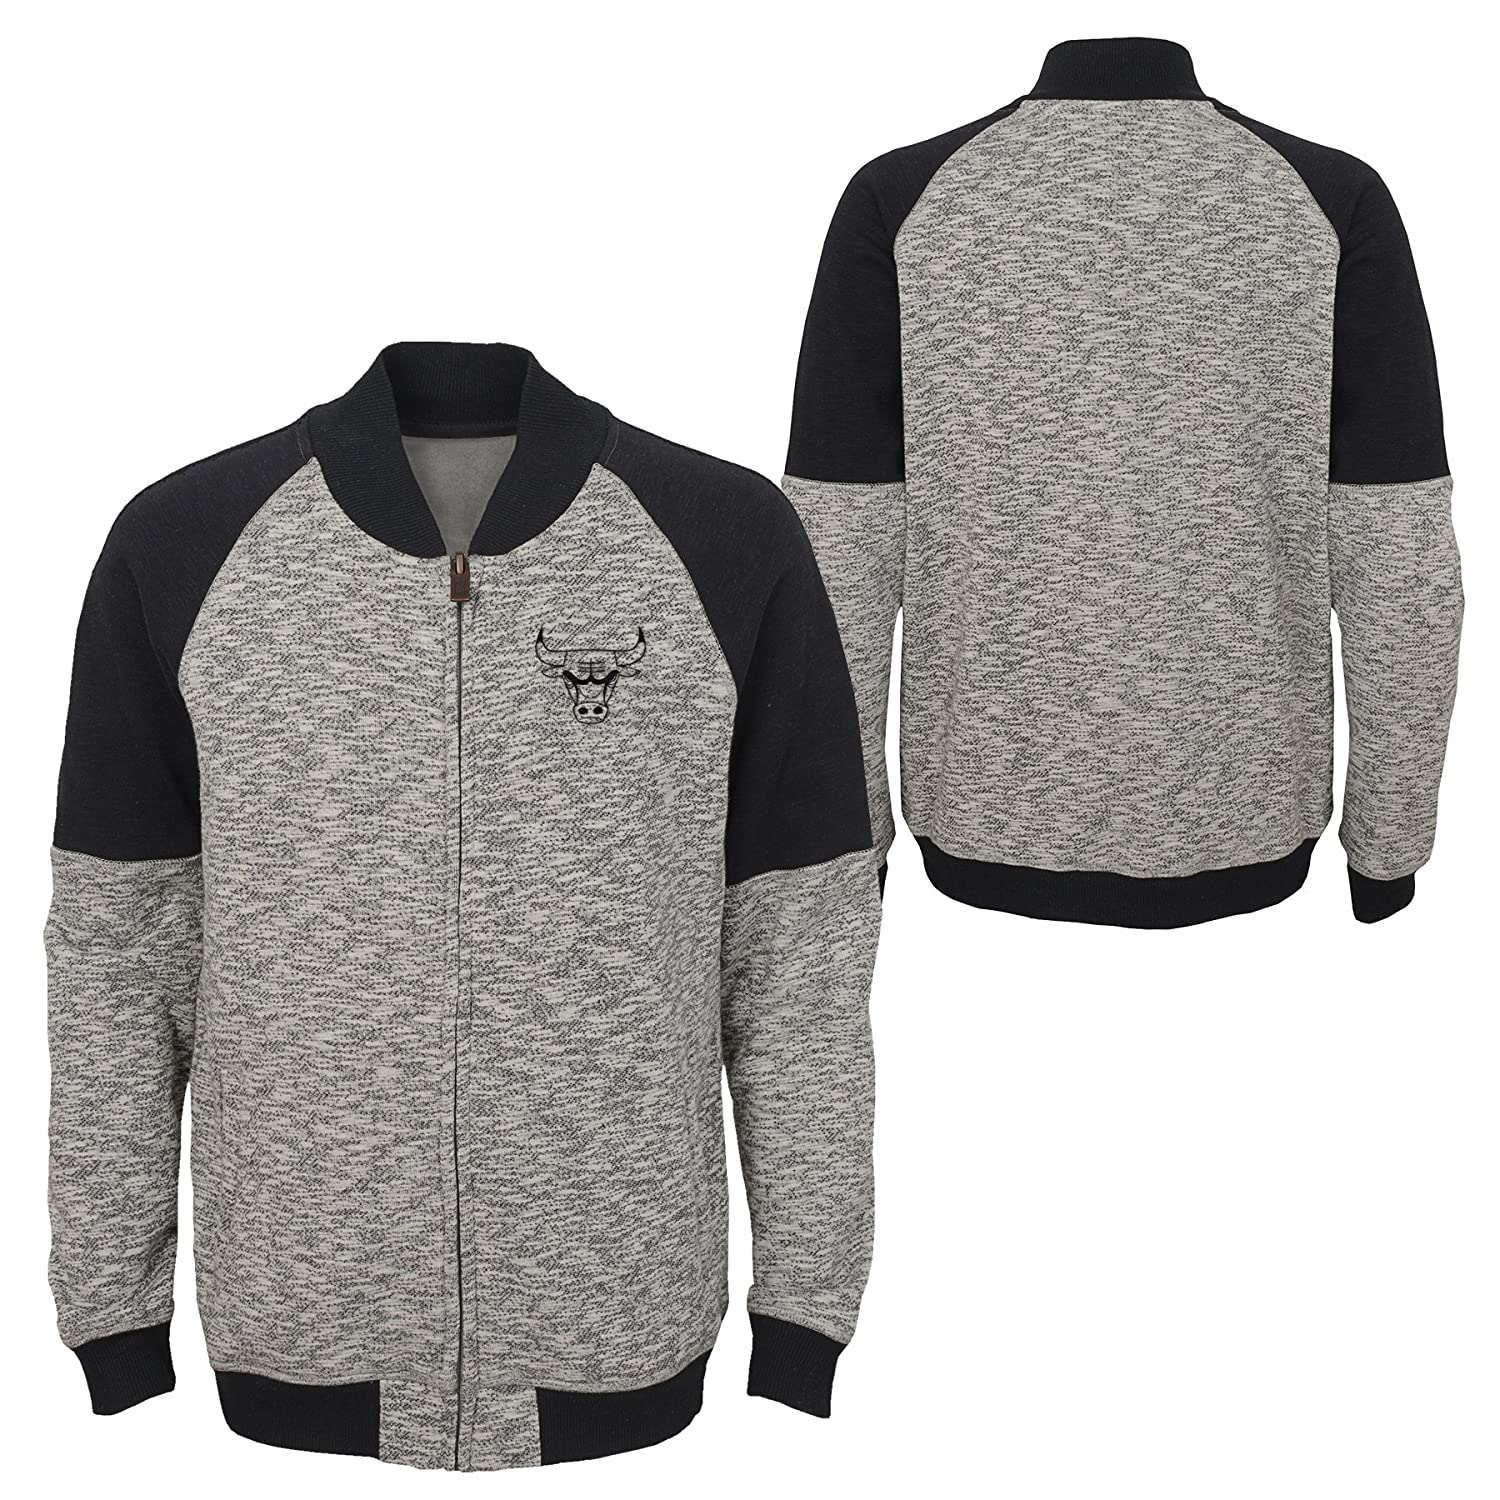 NBA by Outerstuff NBA Youth Boys Game Changer Full Zip Jacket